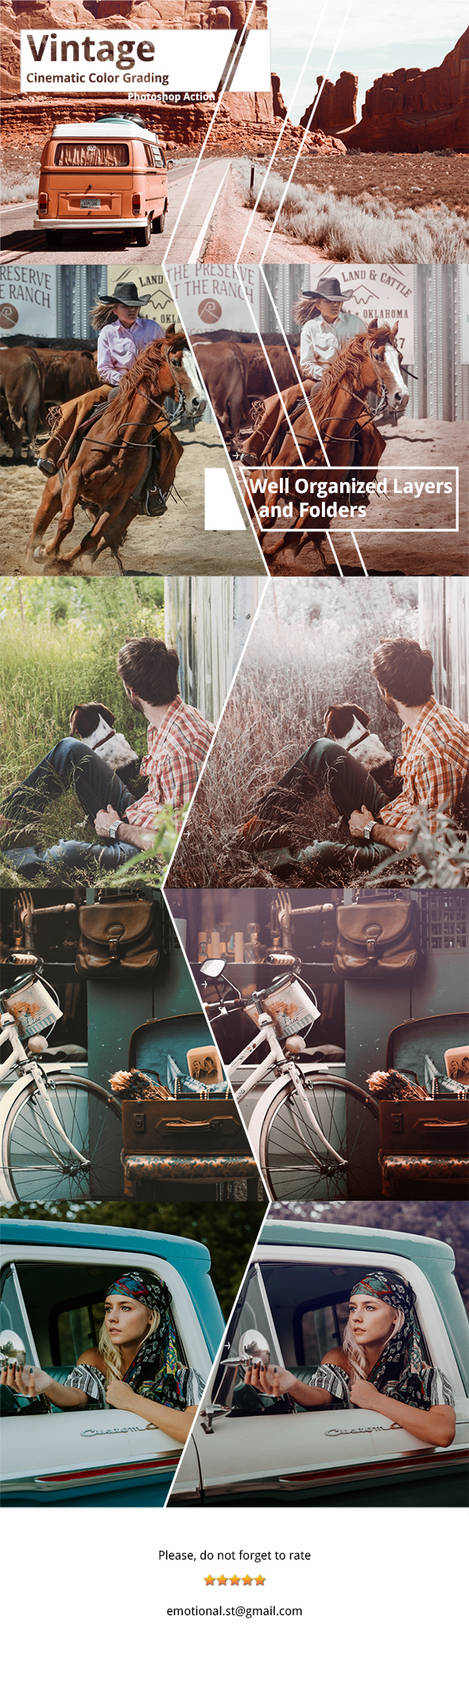 Neo Vintage Cinematic Color Grading Photoshop Acti by Kluzya on